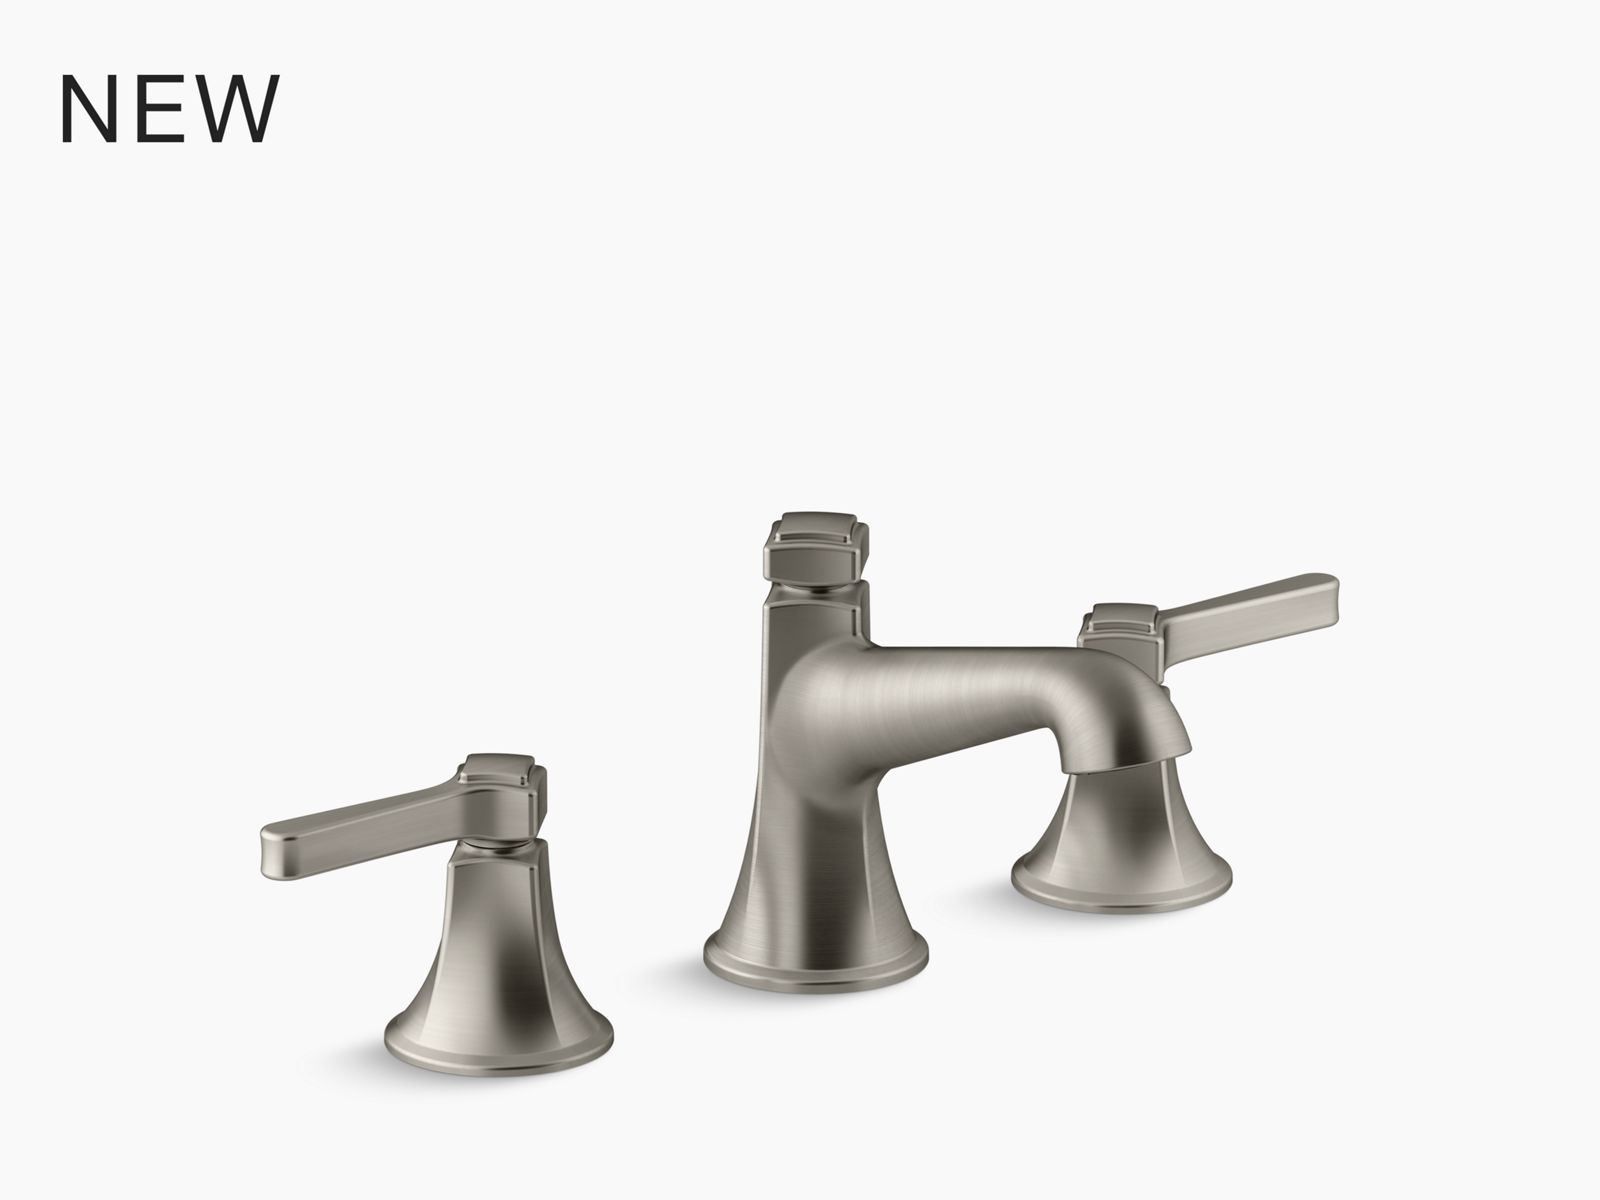 double wristblade lever handle service sink faucet with loose key stops and spout with bottom wall brace